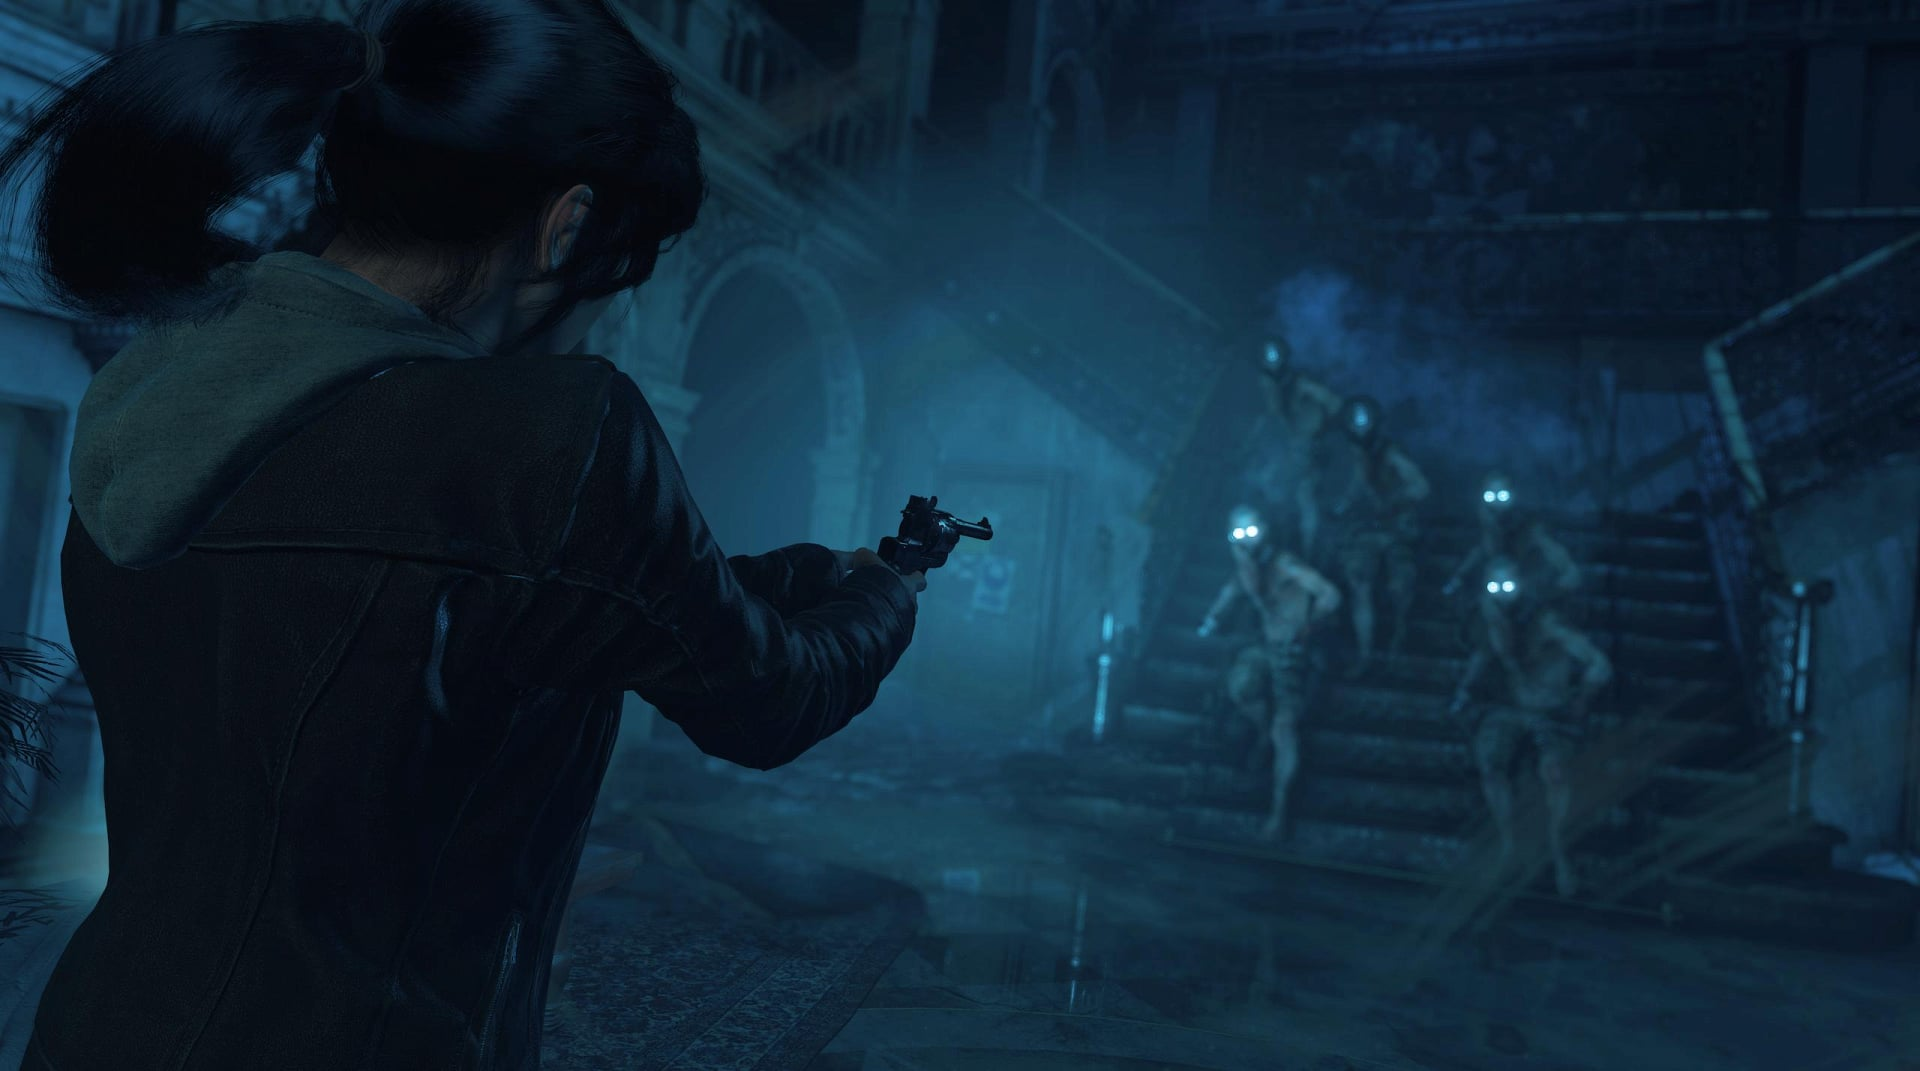 Lara Croft vs. the undead in new Rise of the Tomb Raider: 20 Year Celebration Edition trailer